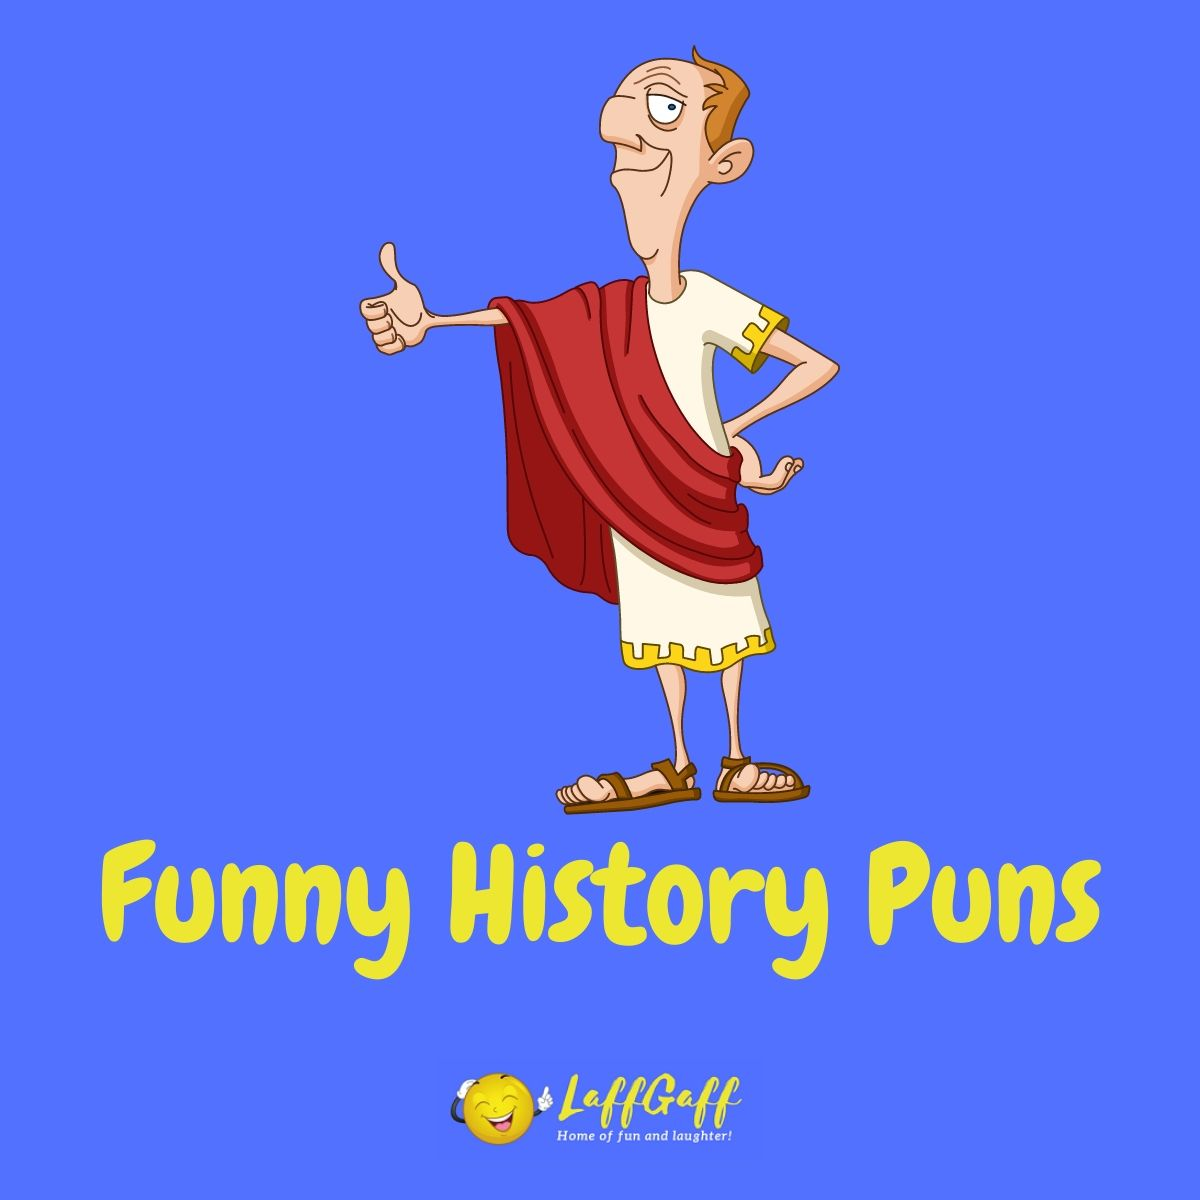 Featured image for a page of so-bad-they're-funny history puns.